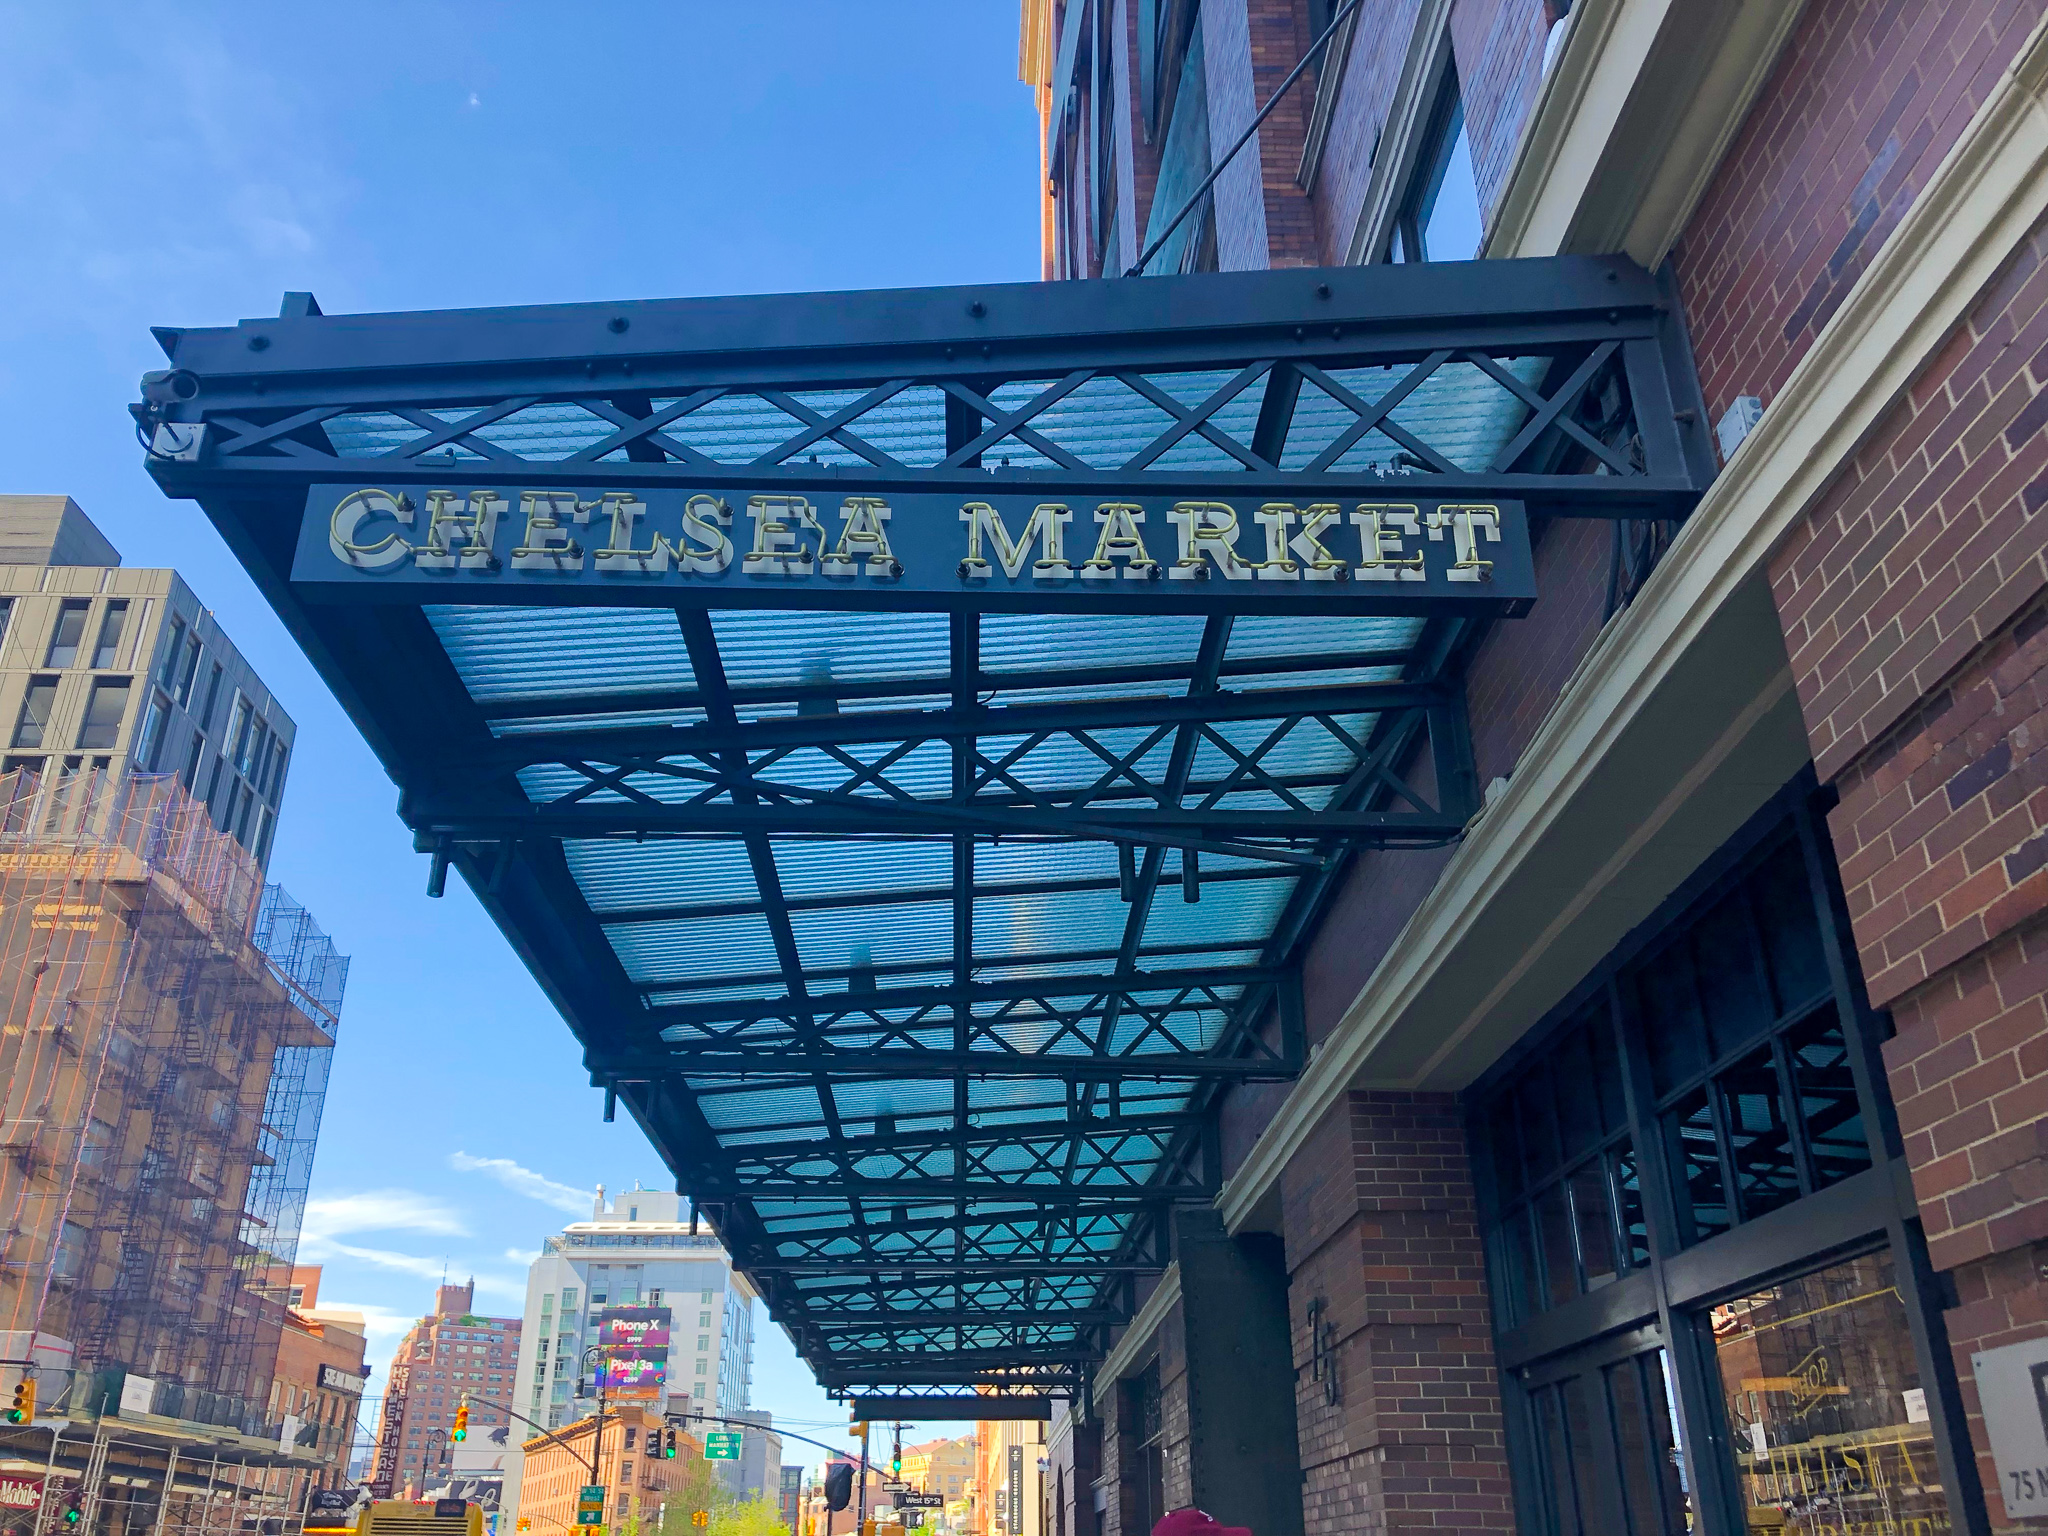 2 days in new york itinerary: eat in chelsea market